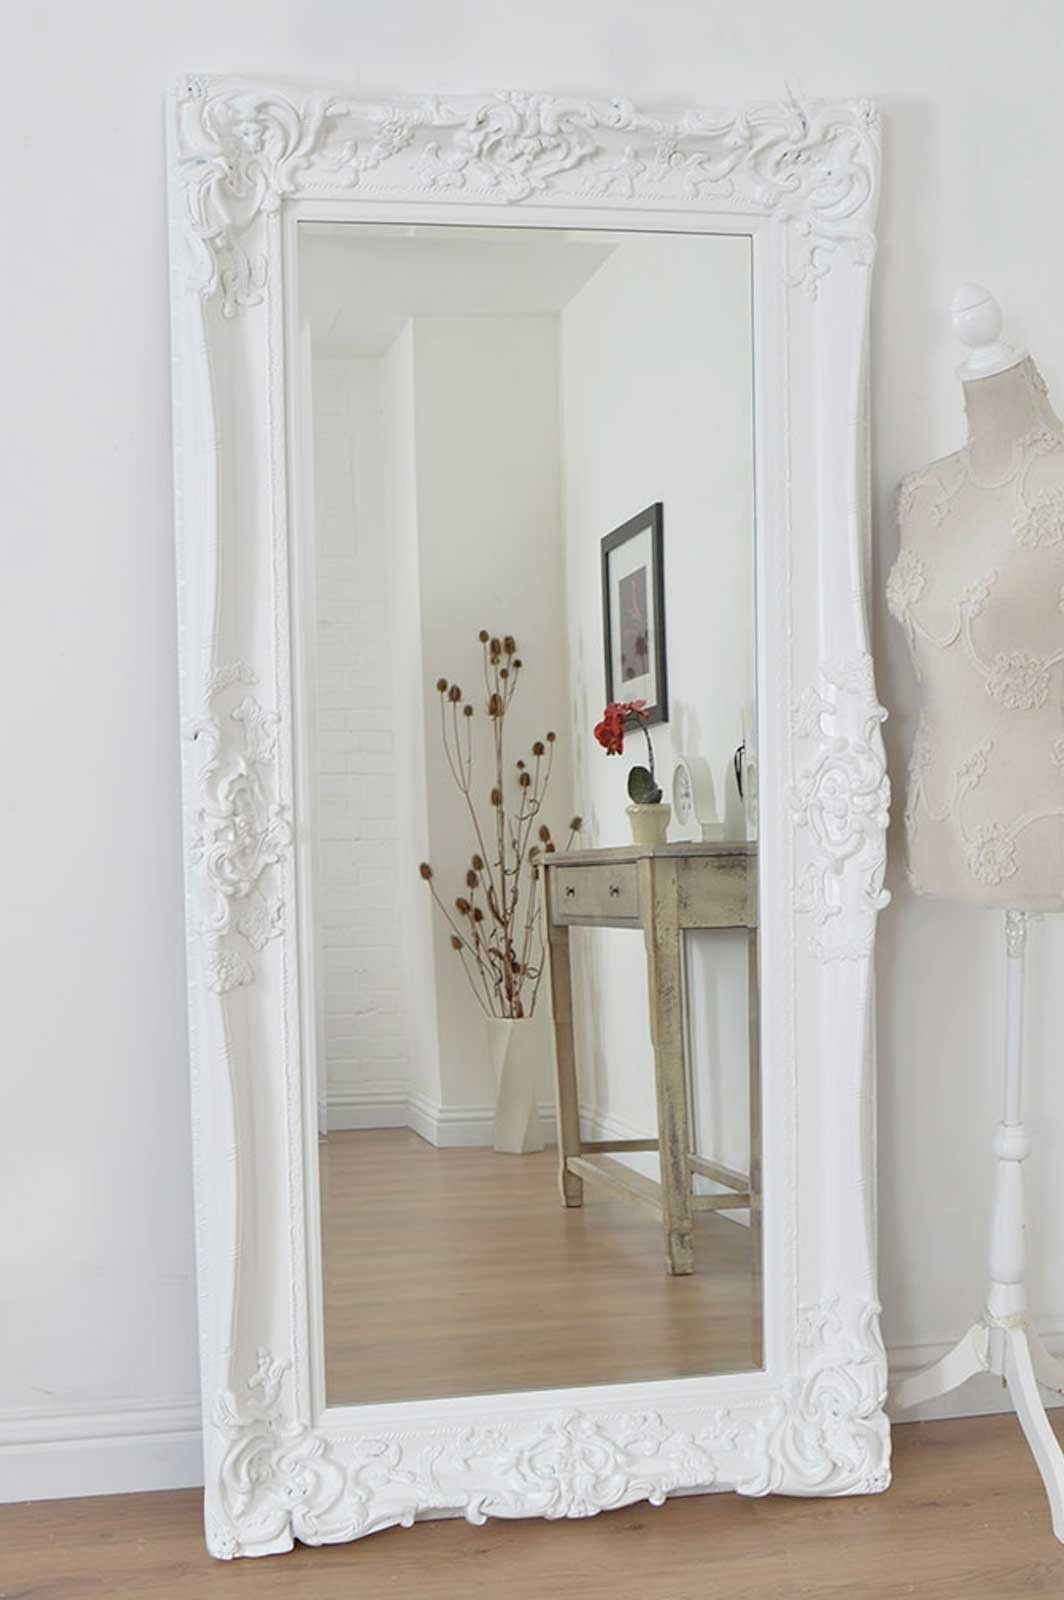 01908 223 388 Large White Mirror White Ornate Mirror Mirror Wall